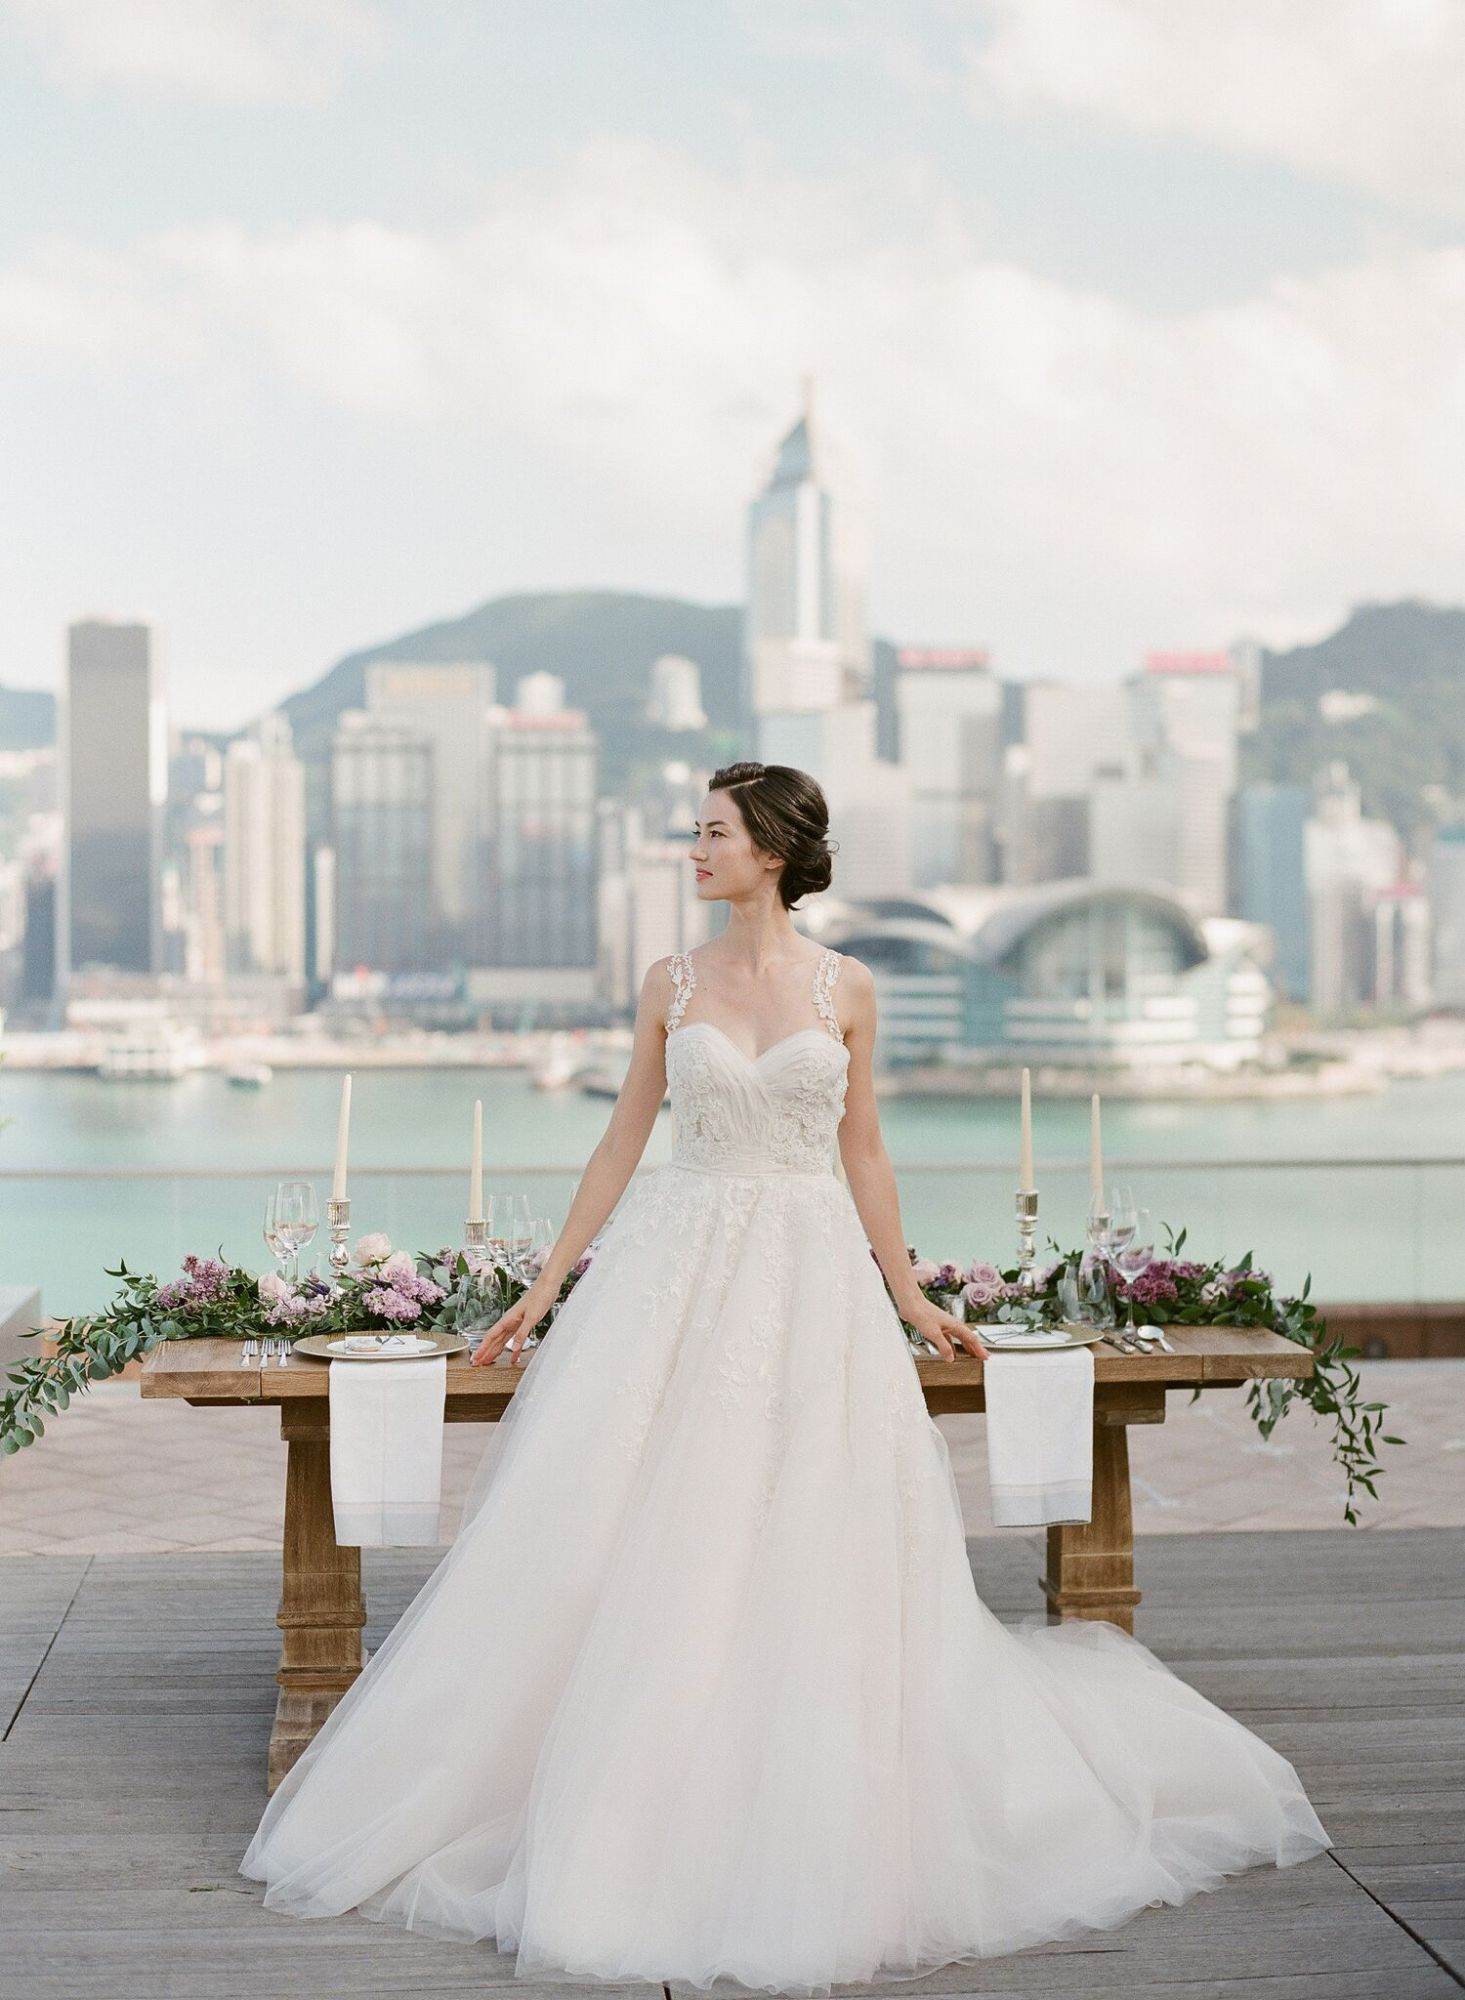 Why You Should Head to InterContinental Hong Kong's Luxury Wedding Showcase